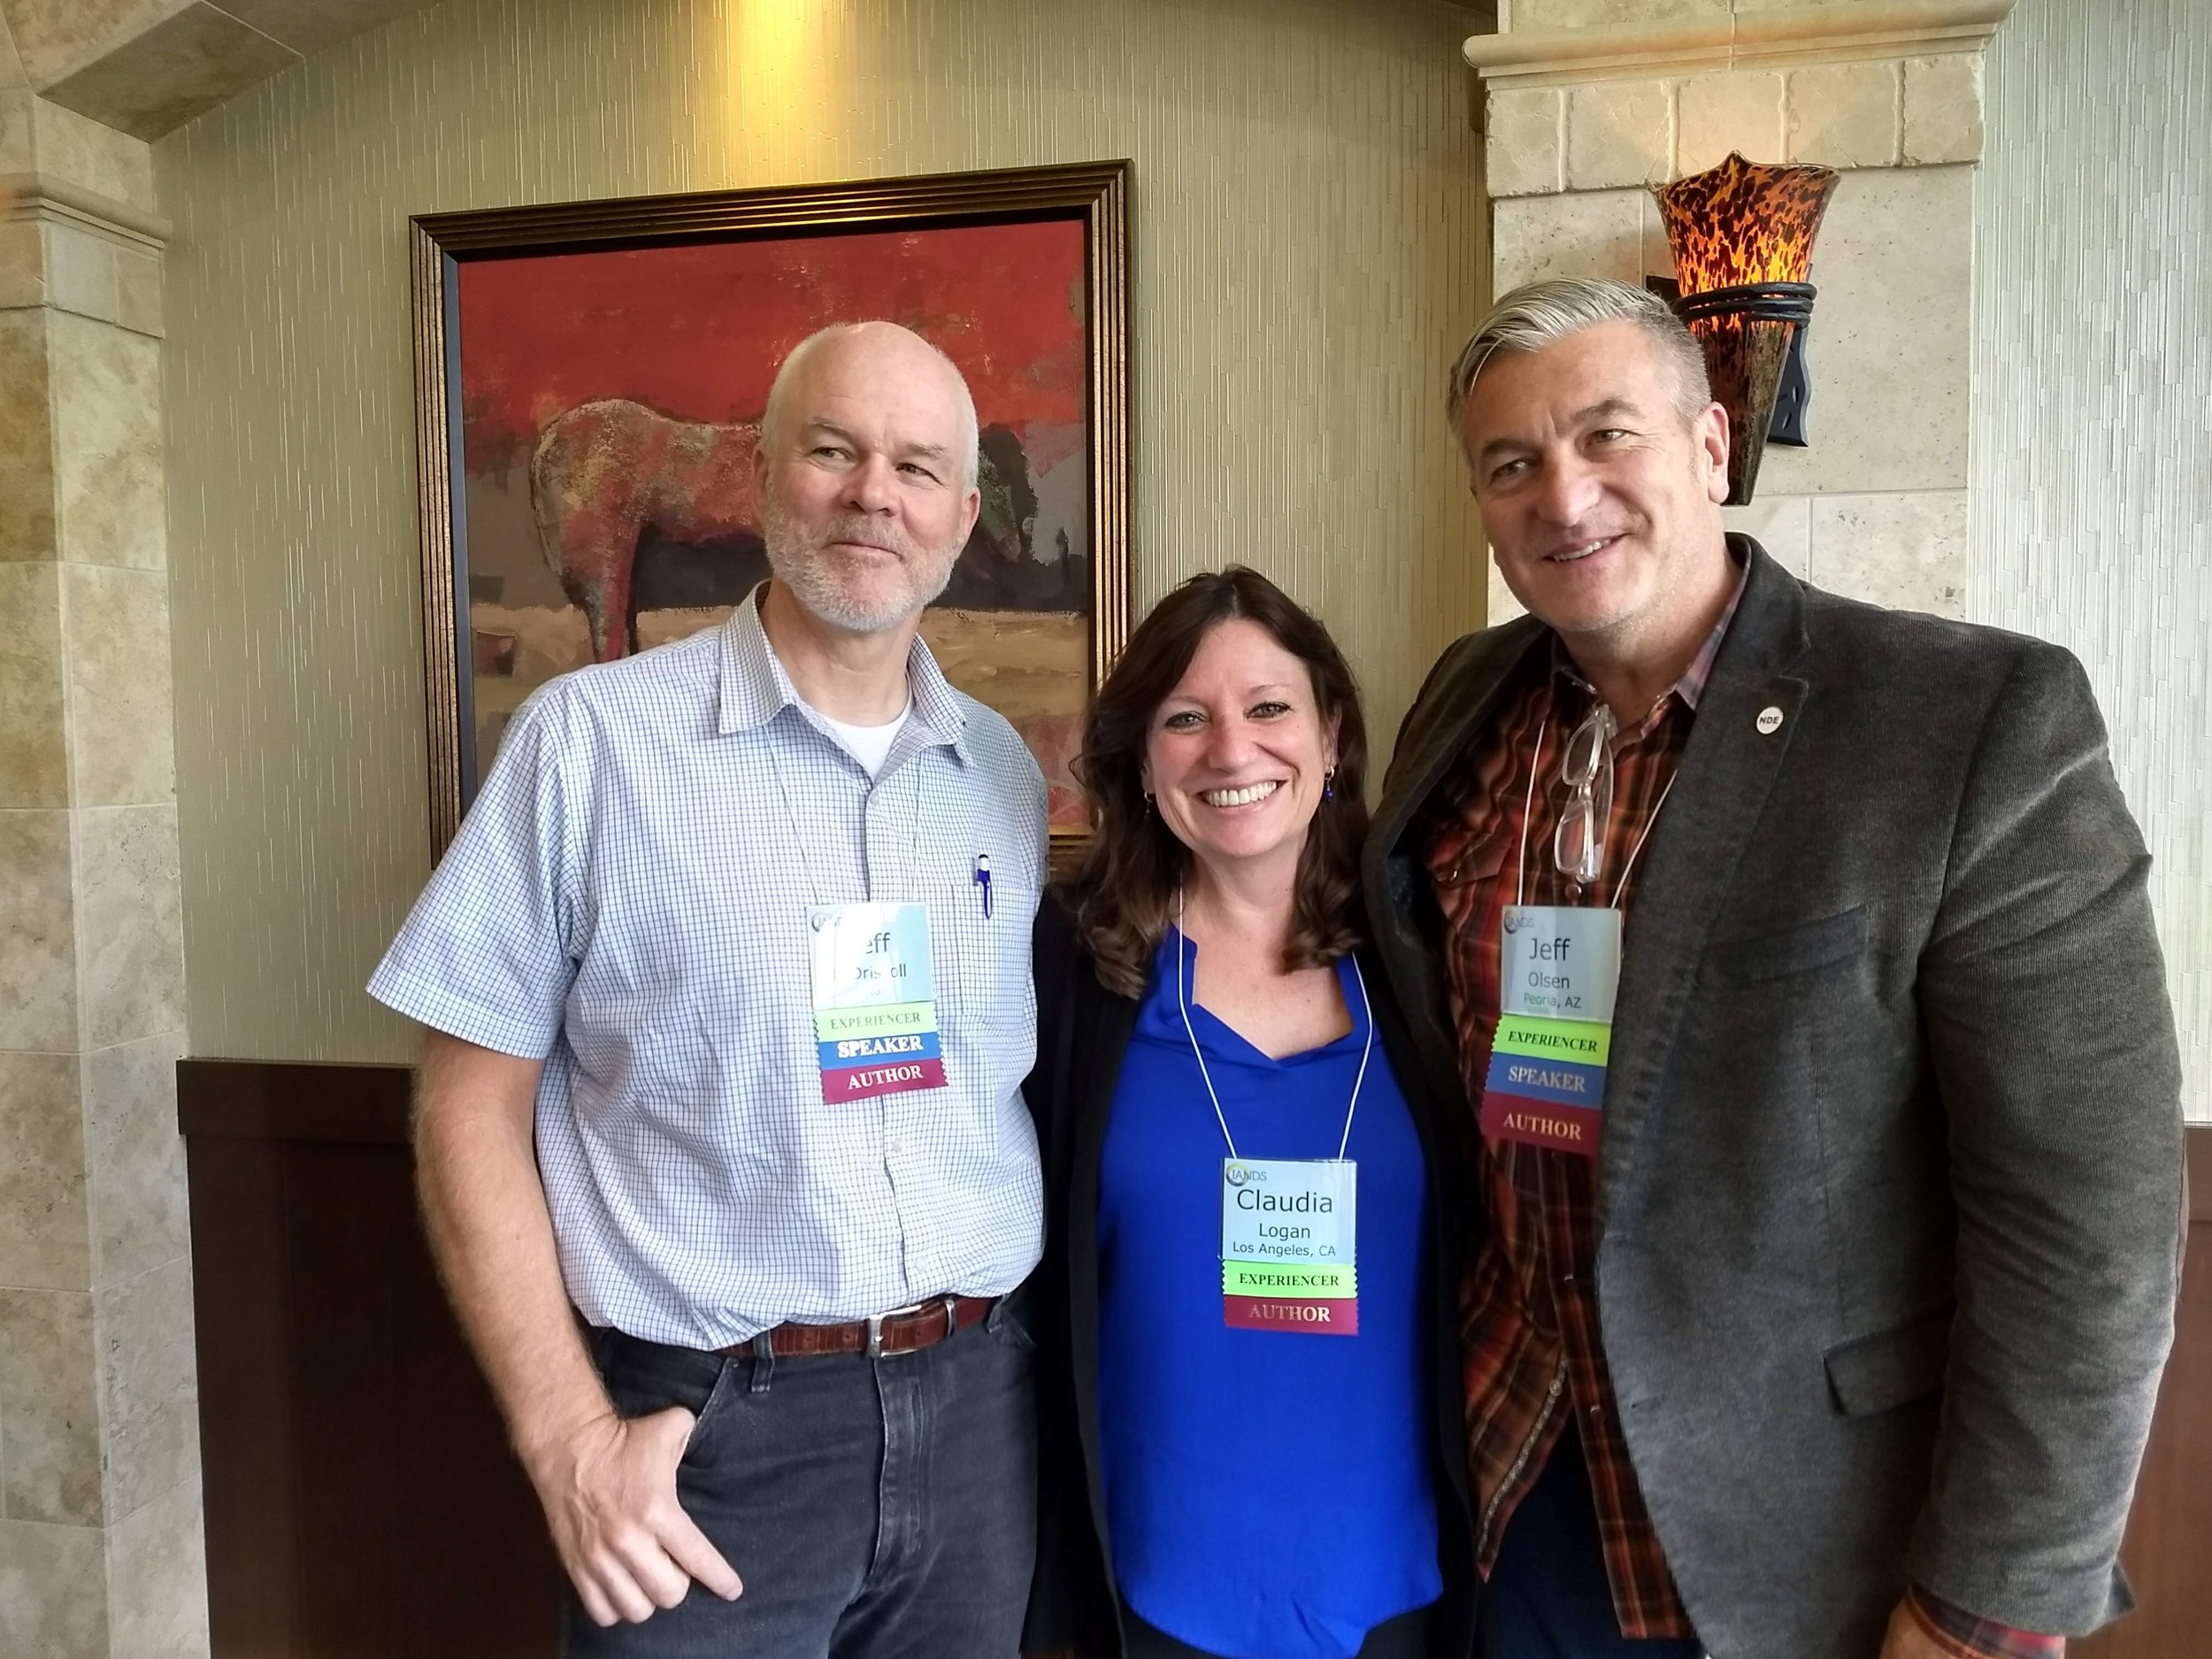 Claudia Logan, Dr. Jeff O'Driscoll and Jeff Olsen